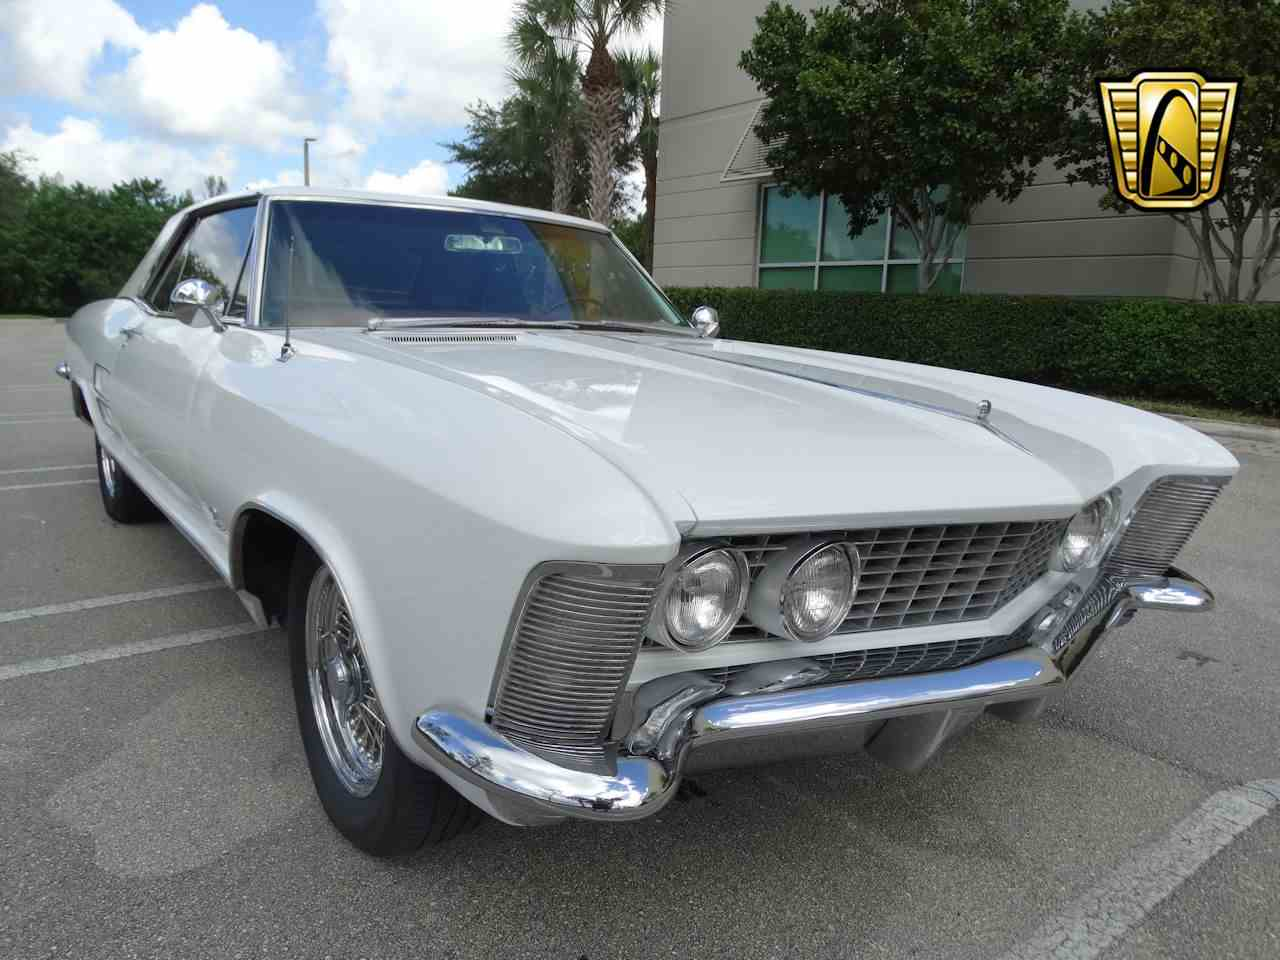 Large Picture of '64 Buick Riviera located in Florida - $22,595.00 Offered by Gateway Classic Cars - Fort Lauderdale - LUJQ